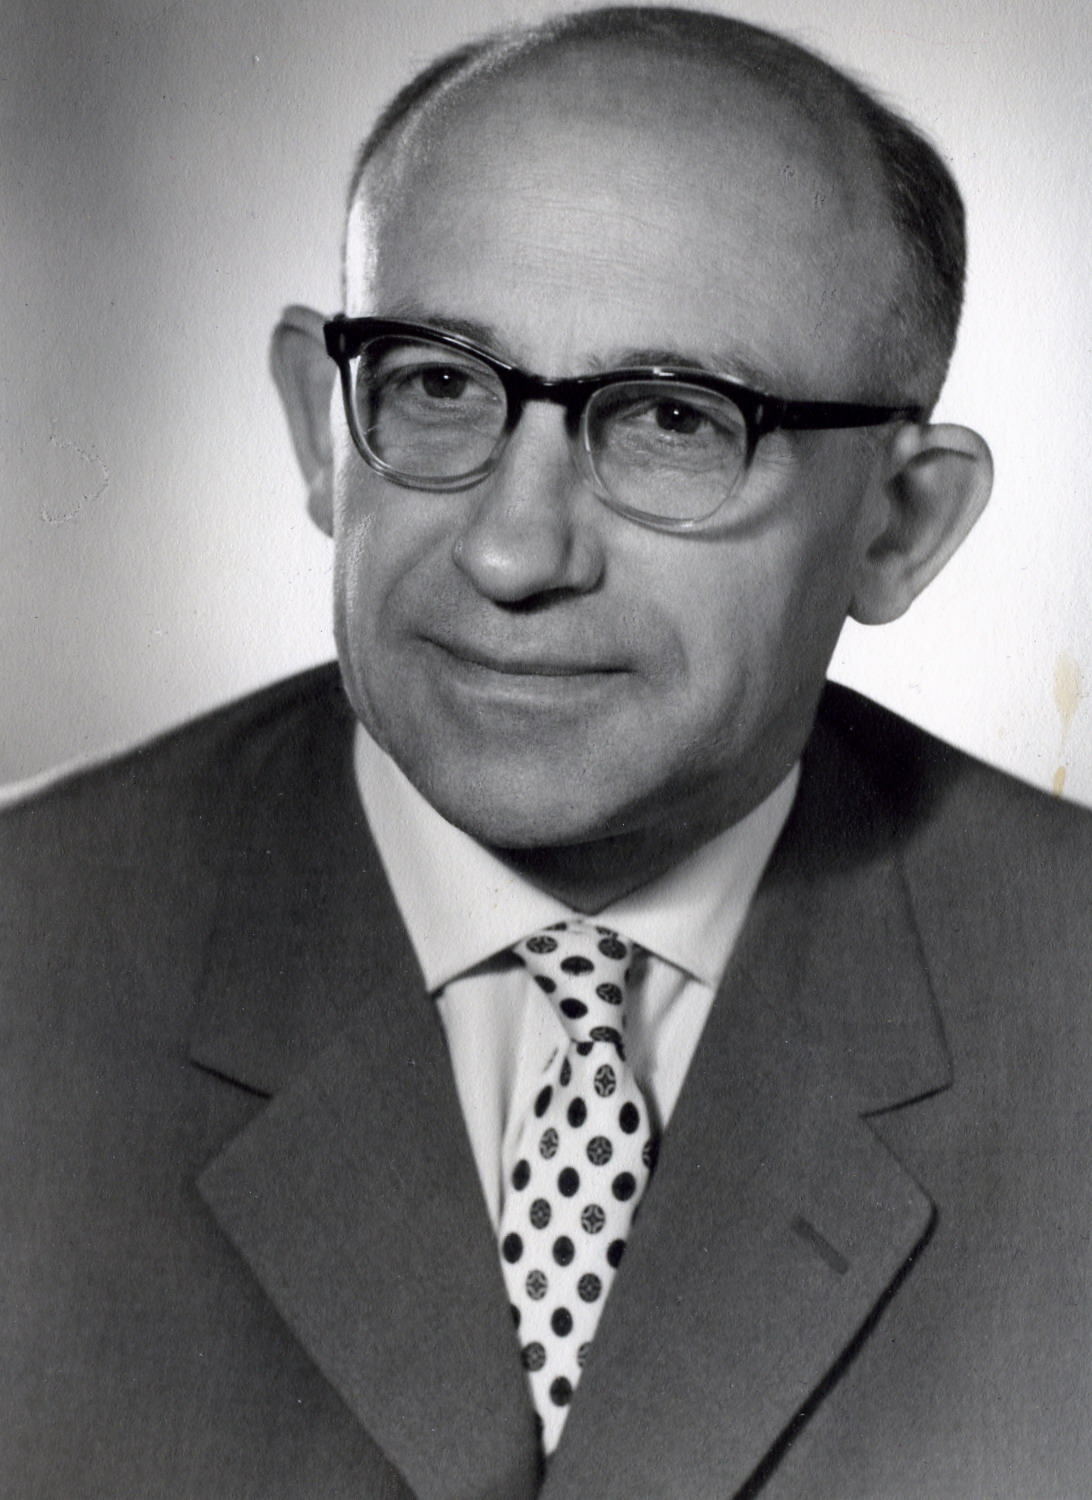 Image of Fritz G. Waack from Wikidata